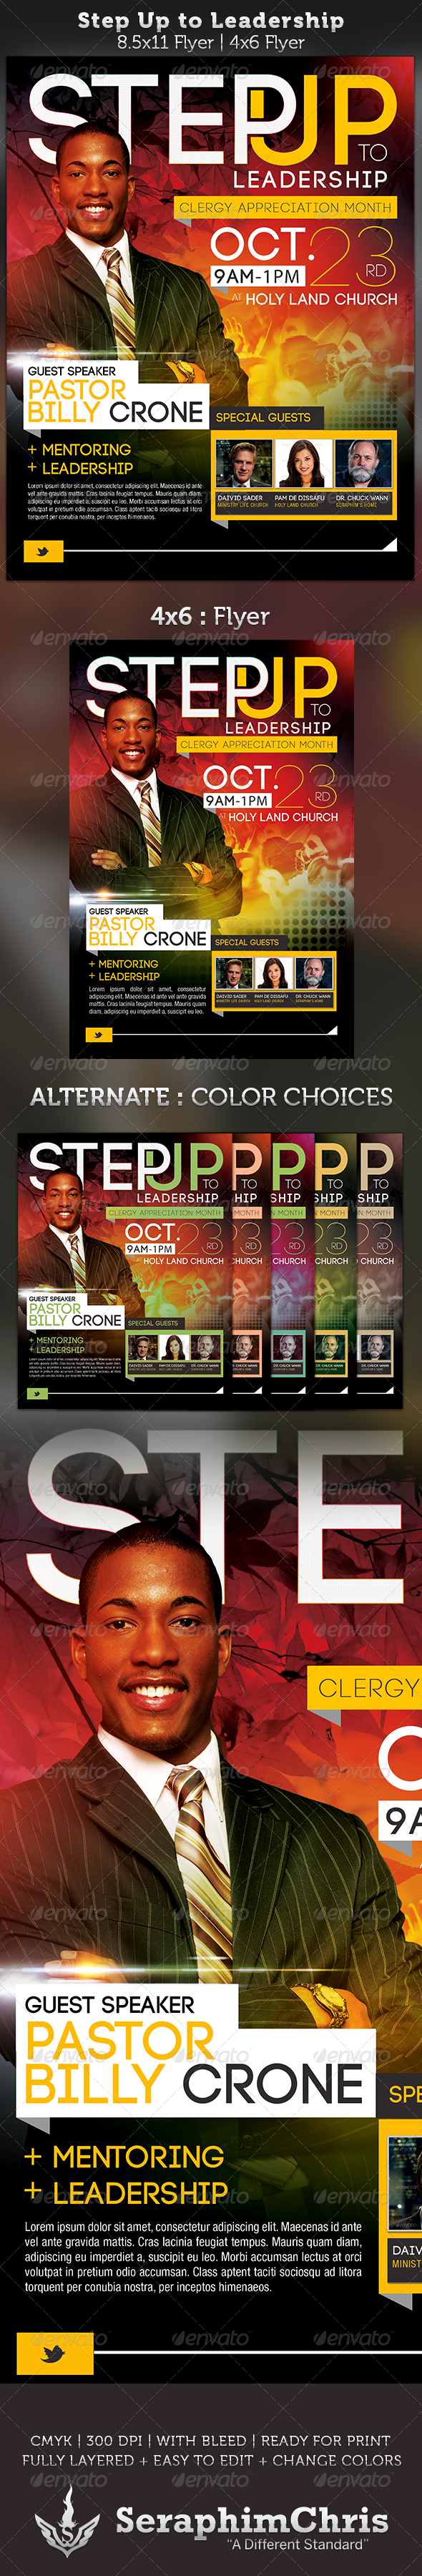 best images about flyer ideas children church 17 best images about flyer ideas children church church and promotion